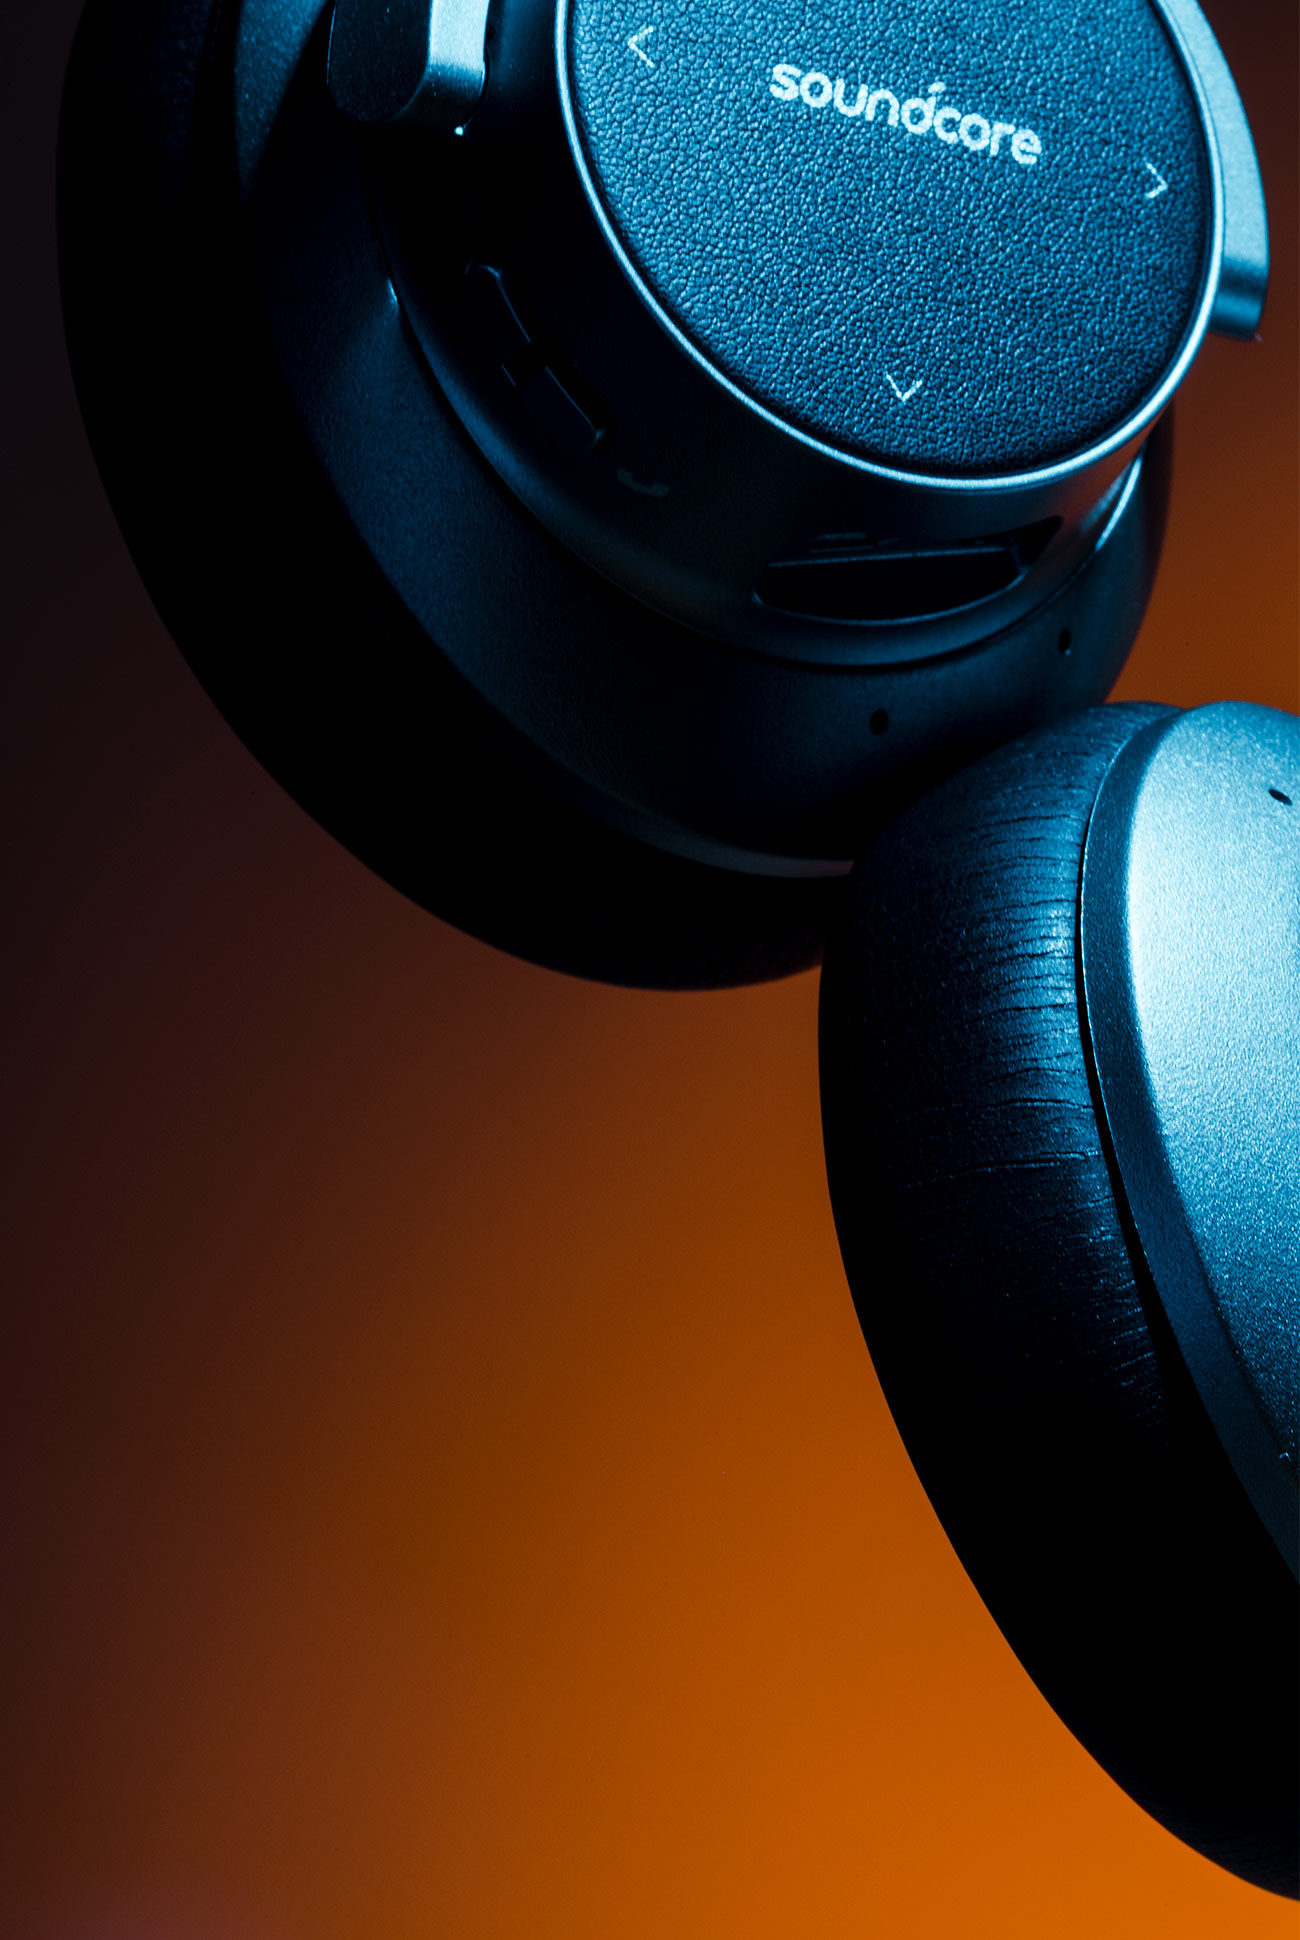 b5645a00d60 Verdict: I can't overstate this: the Anker Soundcore Space NCs are some of  the most comfortable over-ear headphones that I've ever worn. They have a  killer ...